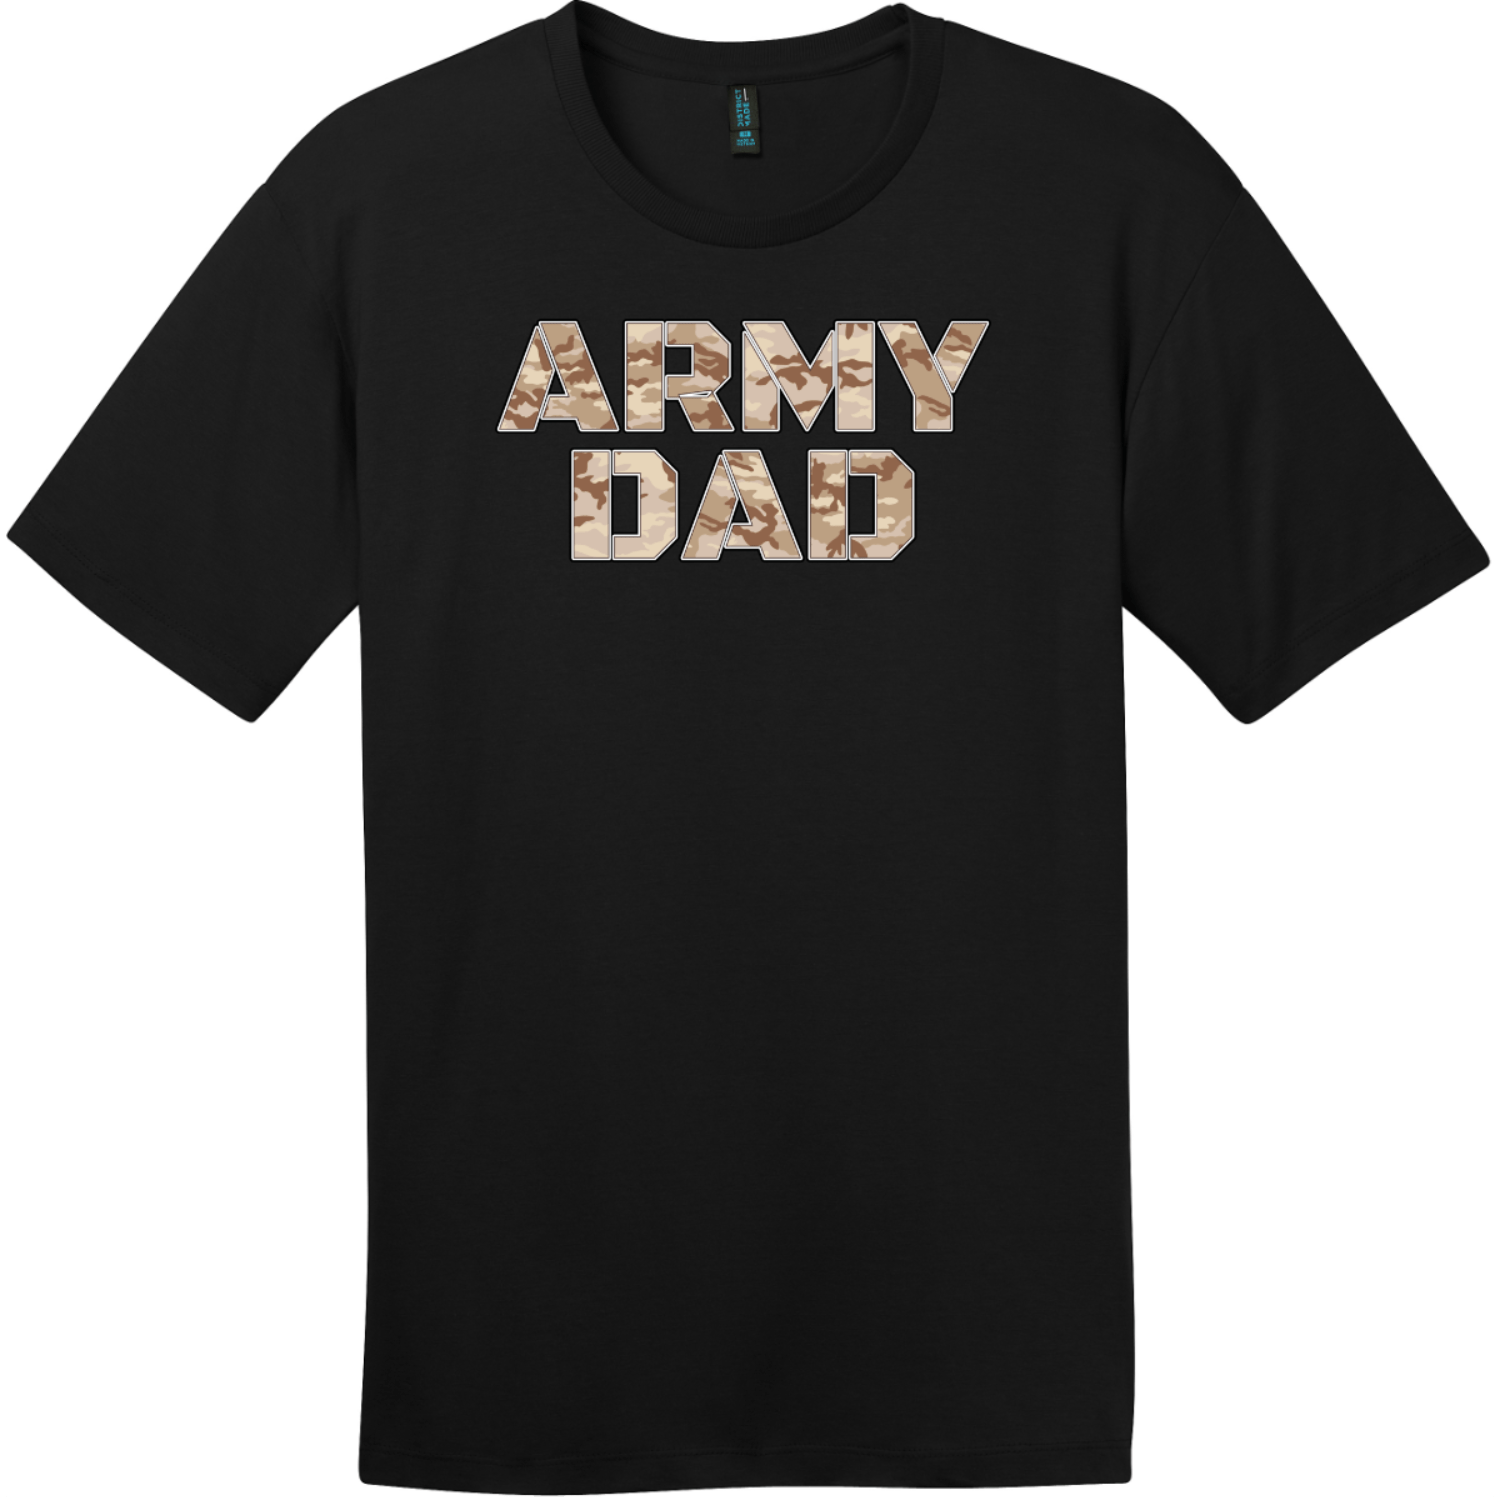 Army Dad Sand Camo T-Shirt Jet Black District Perfect Weight Tee DT104